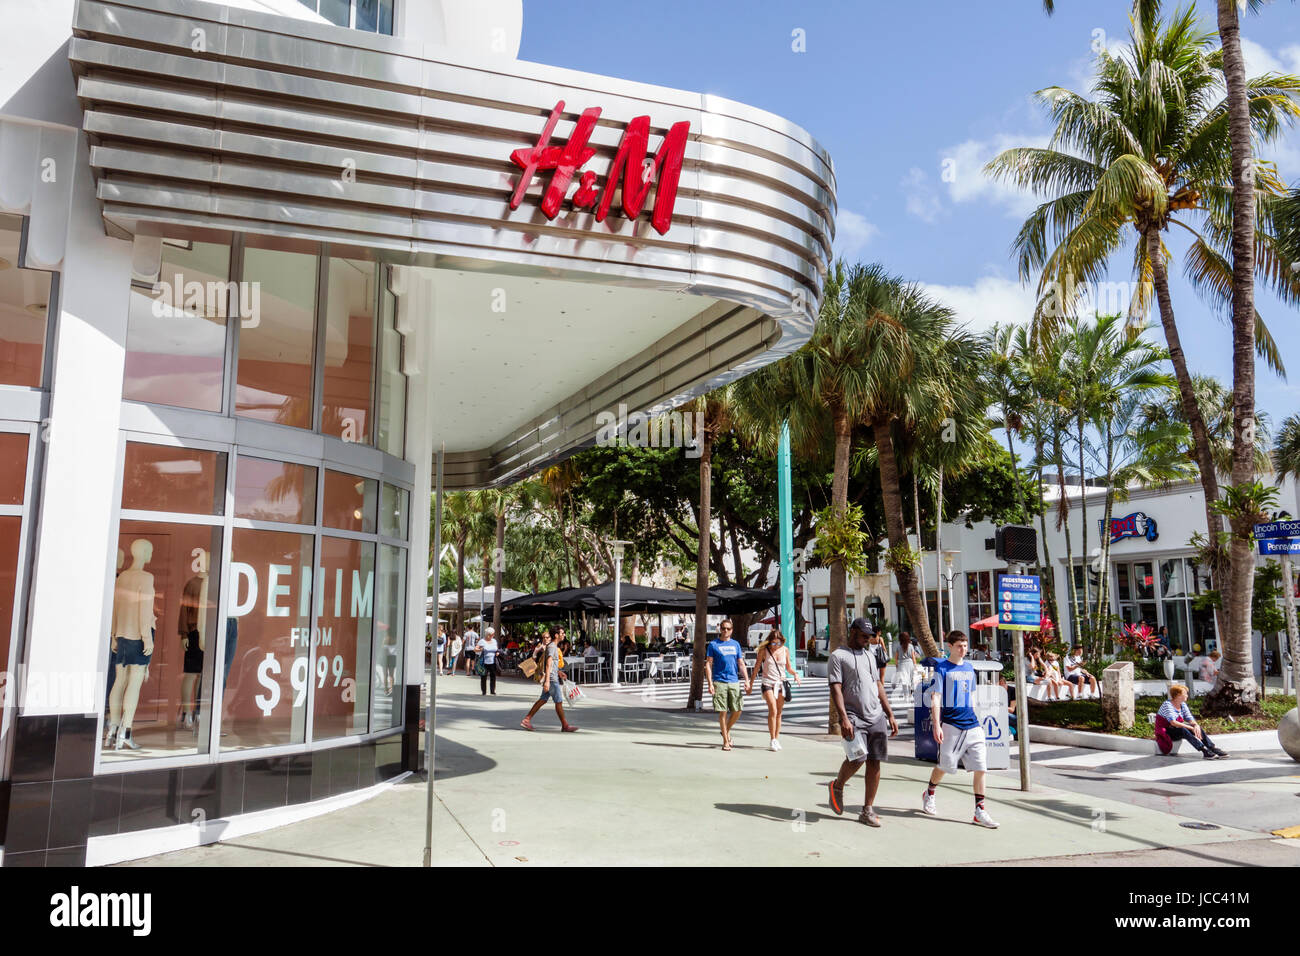 miami beach, florida fußgängerzone lincoln road mall store